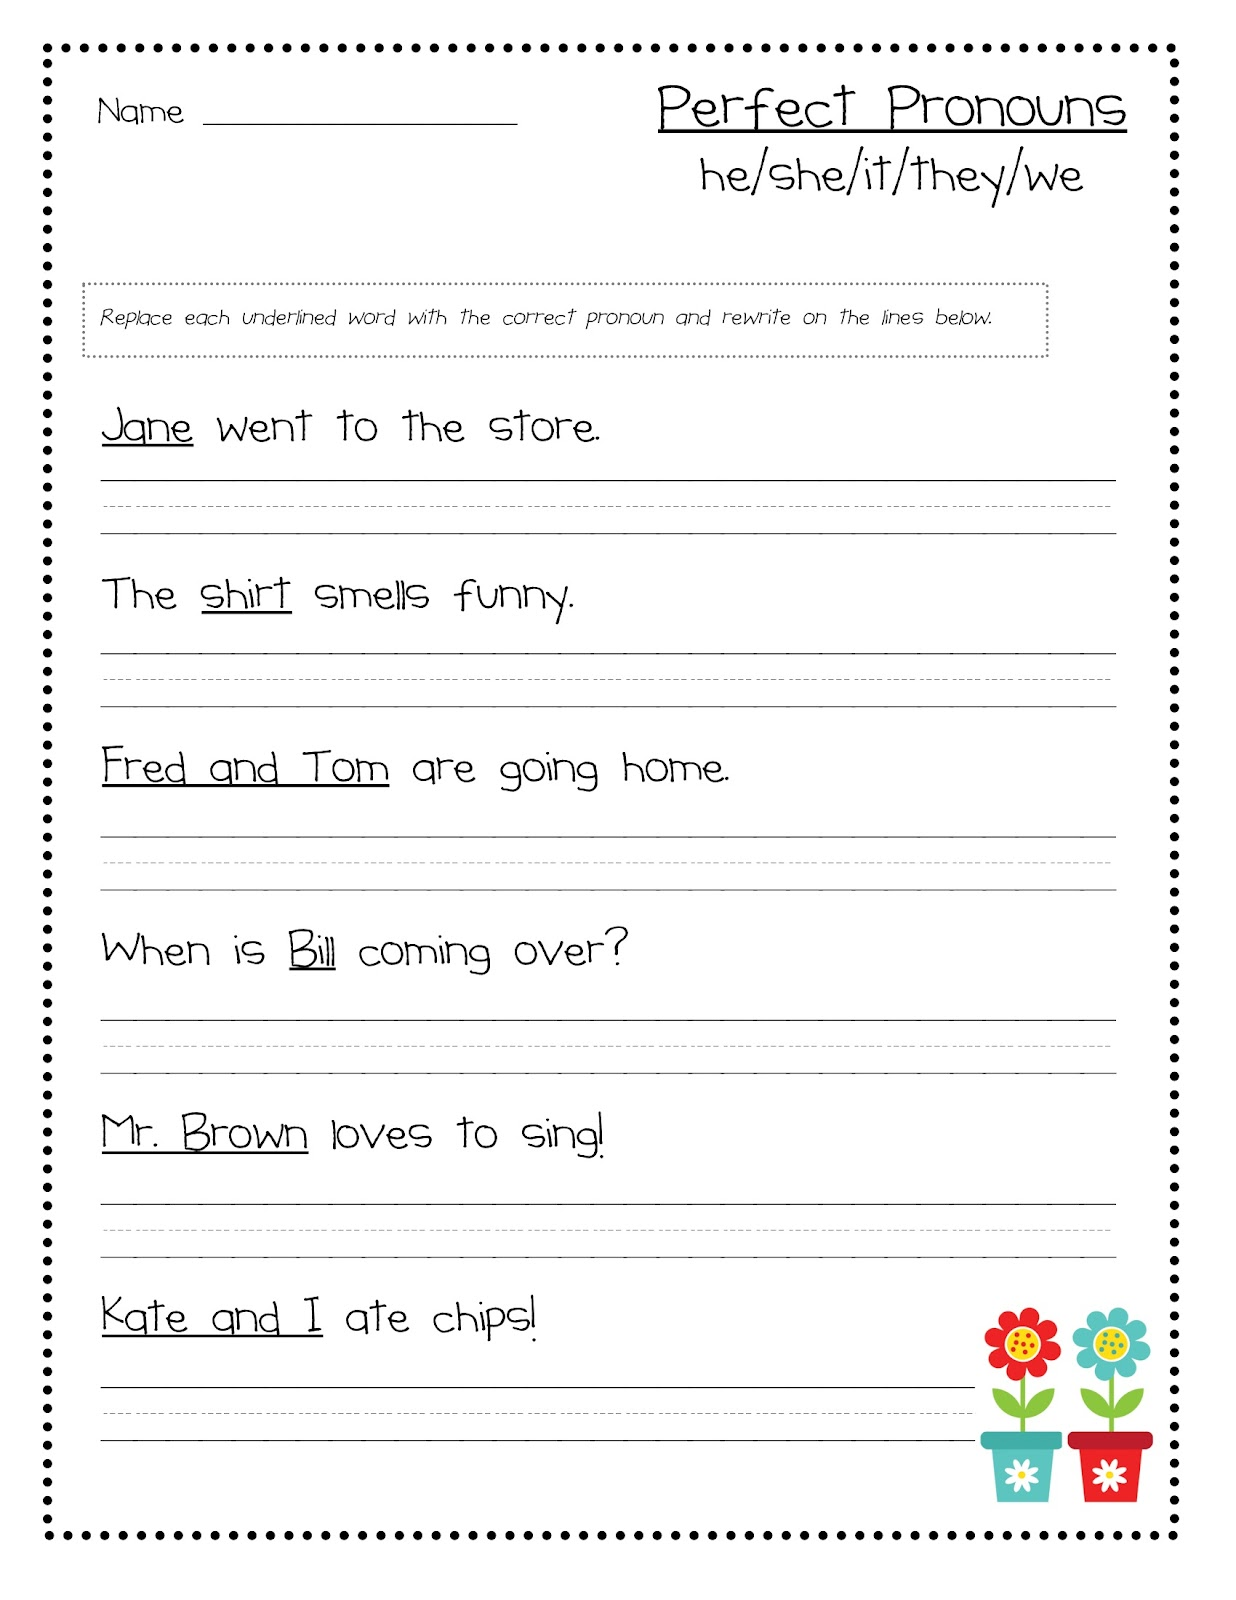 Pronouns Worksheets 2nd Grade Perfect pronoun worksheet